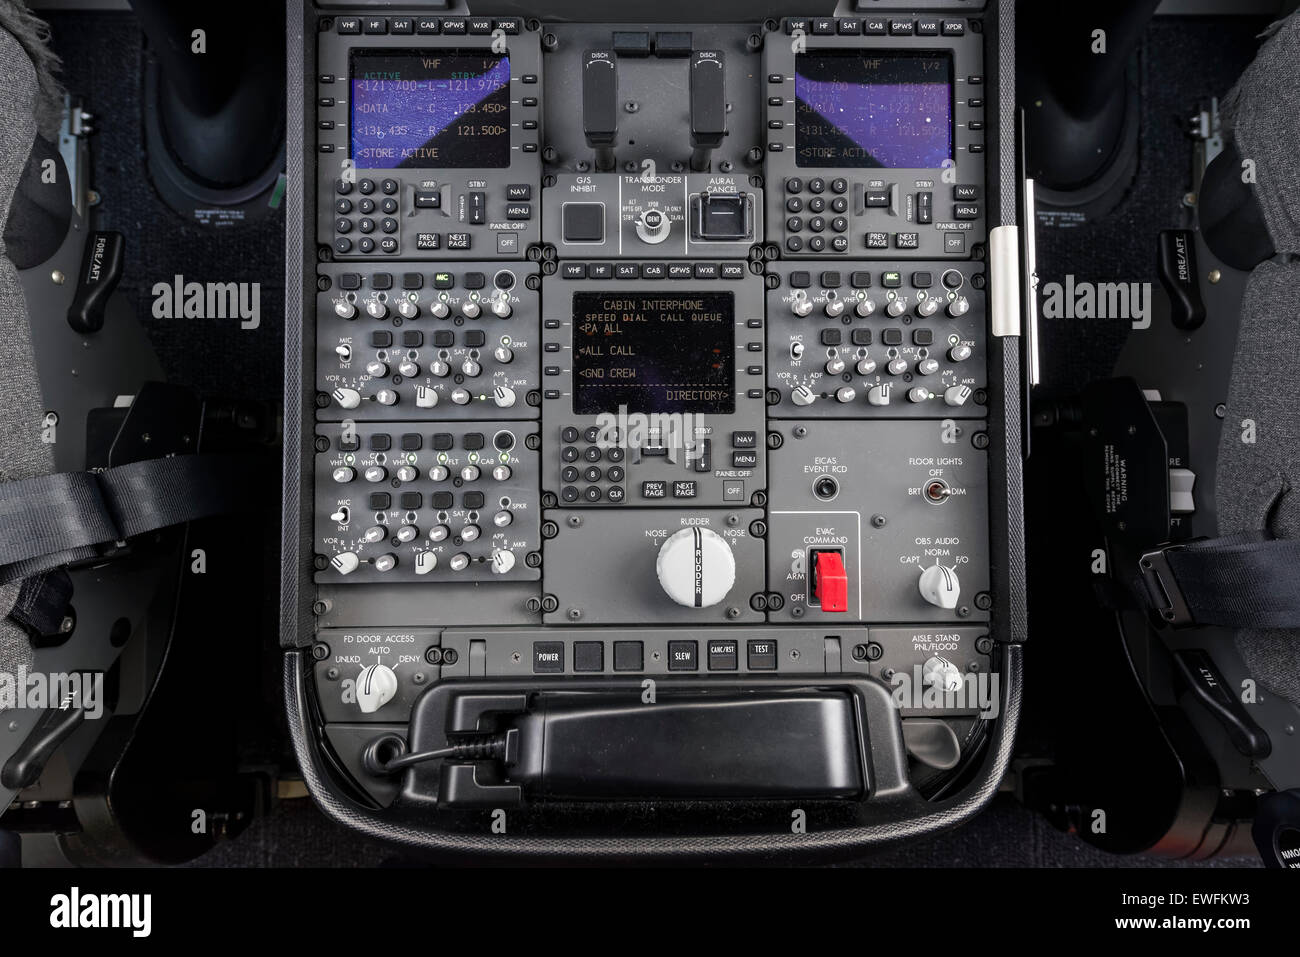 hight resolution of center console in the cockpit of a boeing 787 9 dreamliner of the airline ana at the bottom left the fd door access rotary